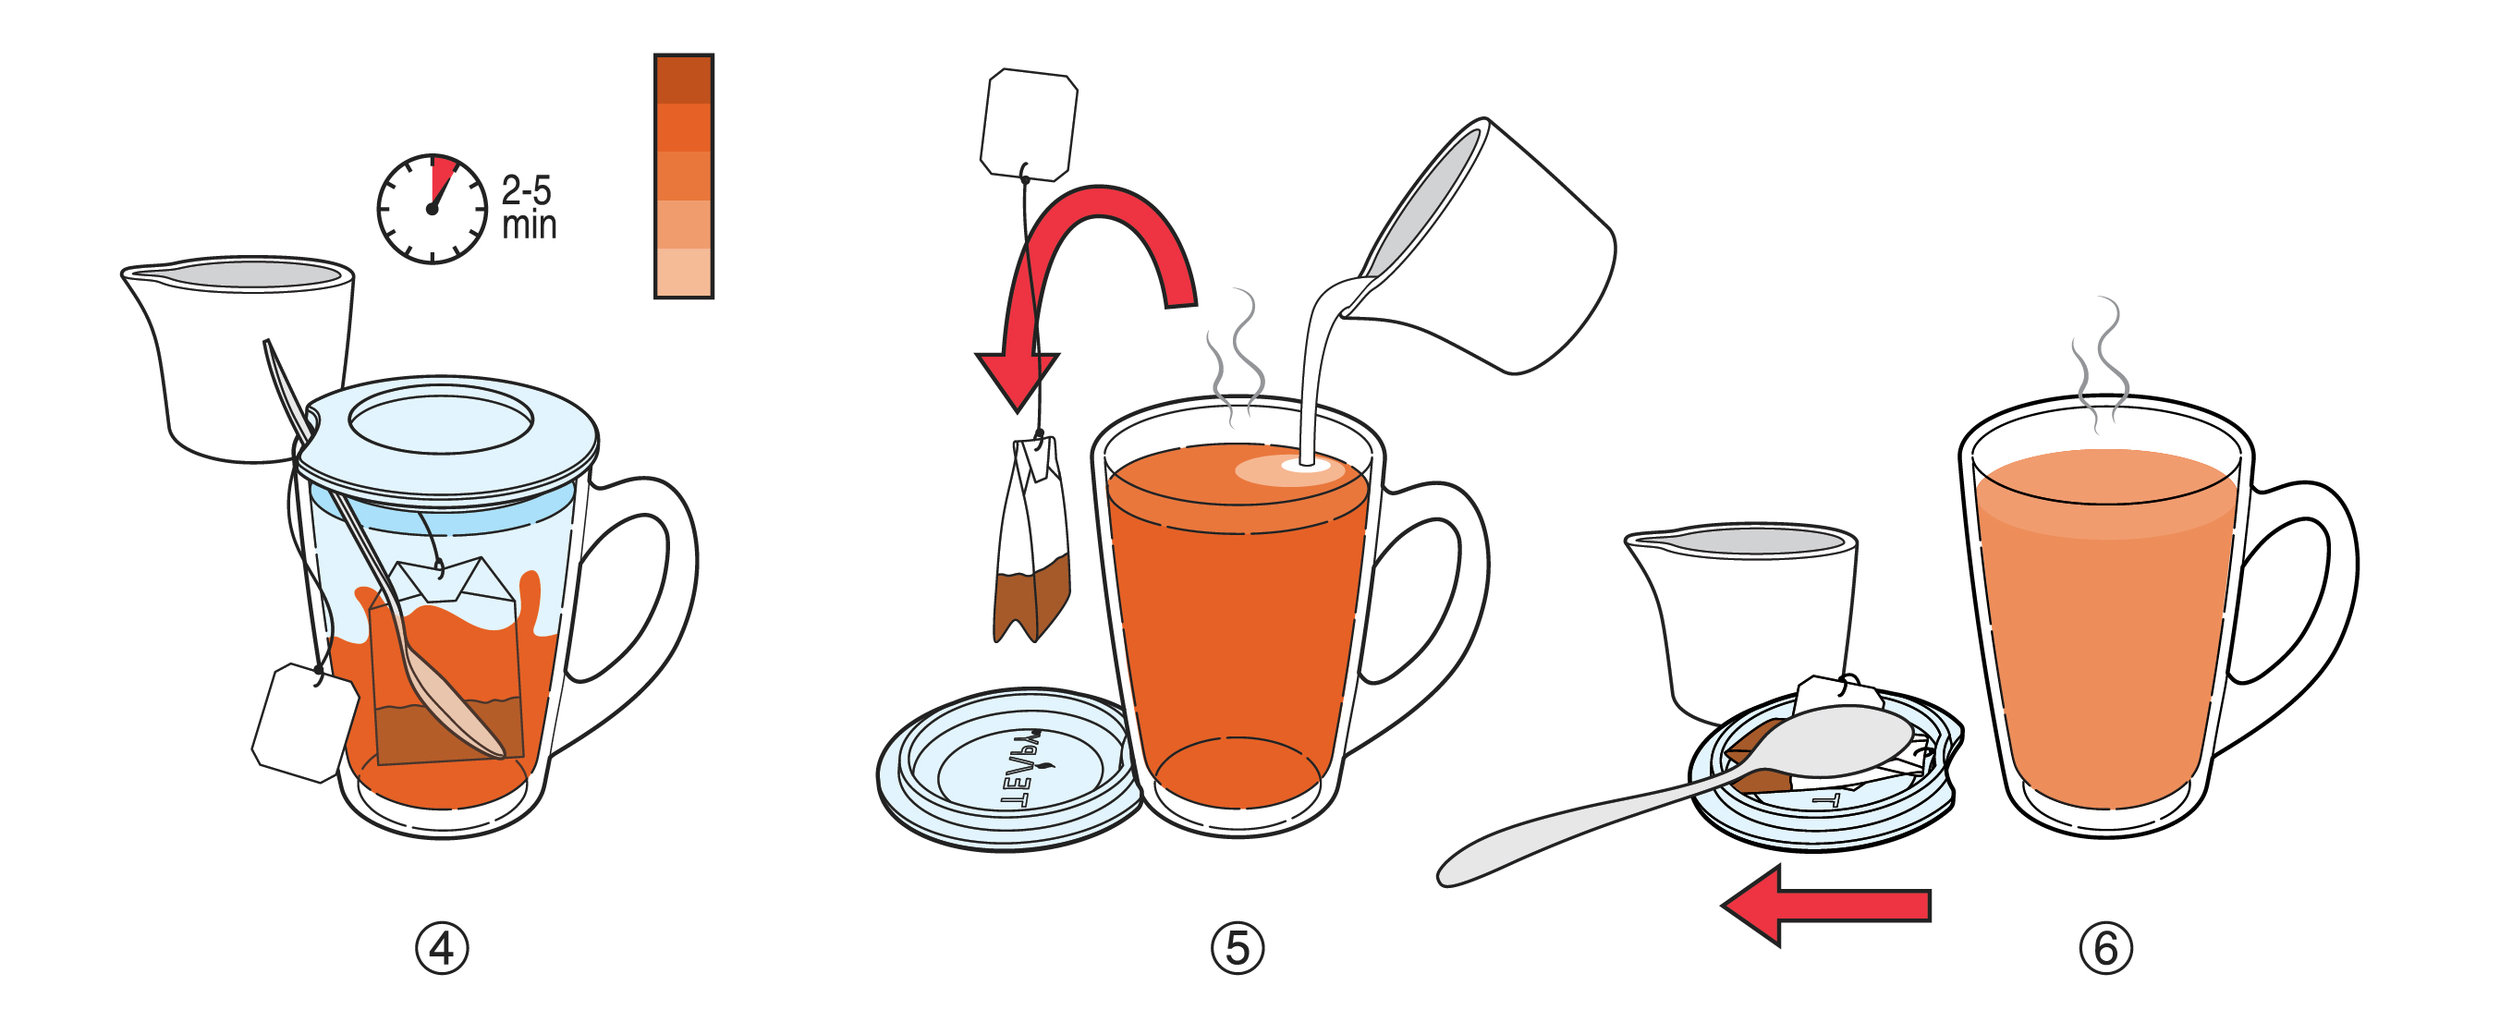 Teapy Diagram with Ceramic Jug-04.jpg